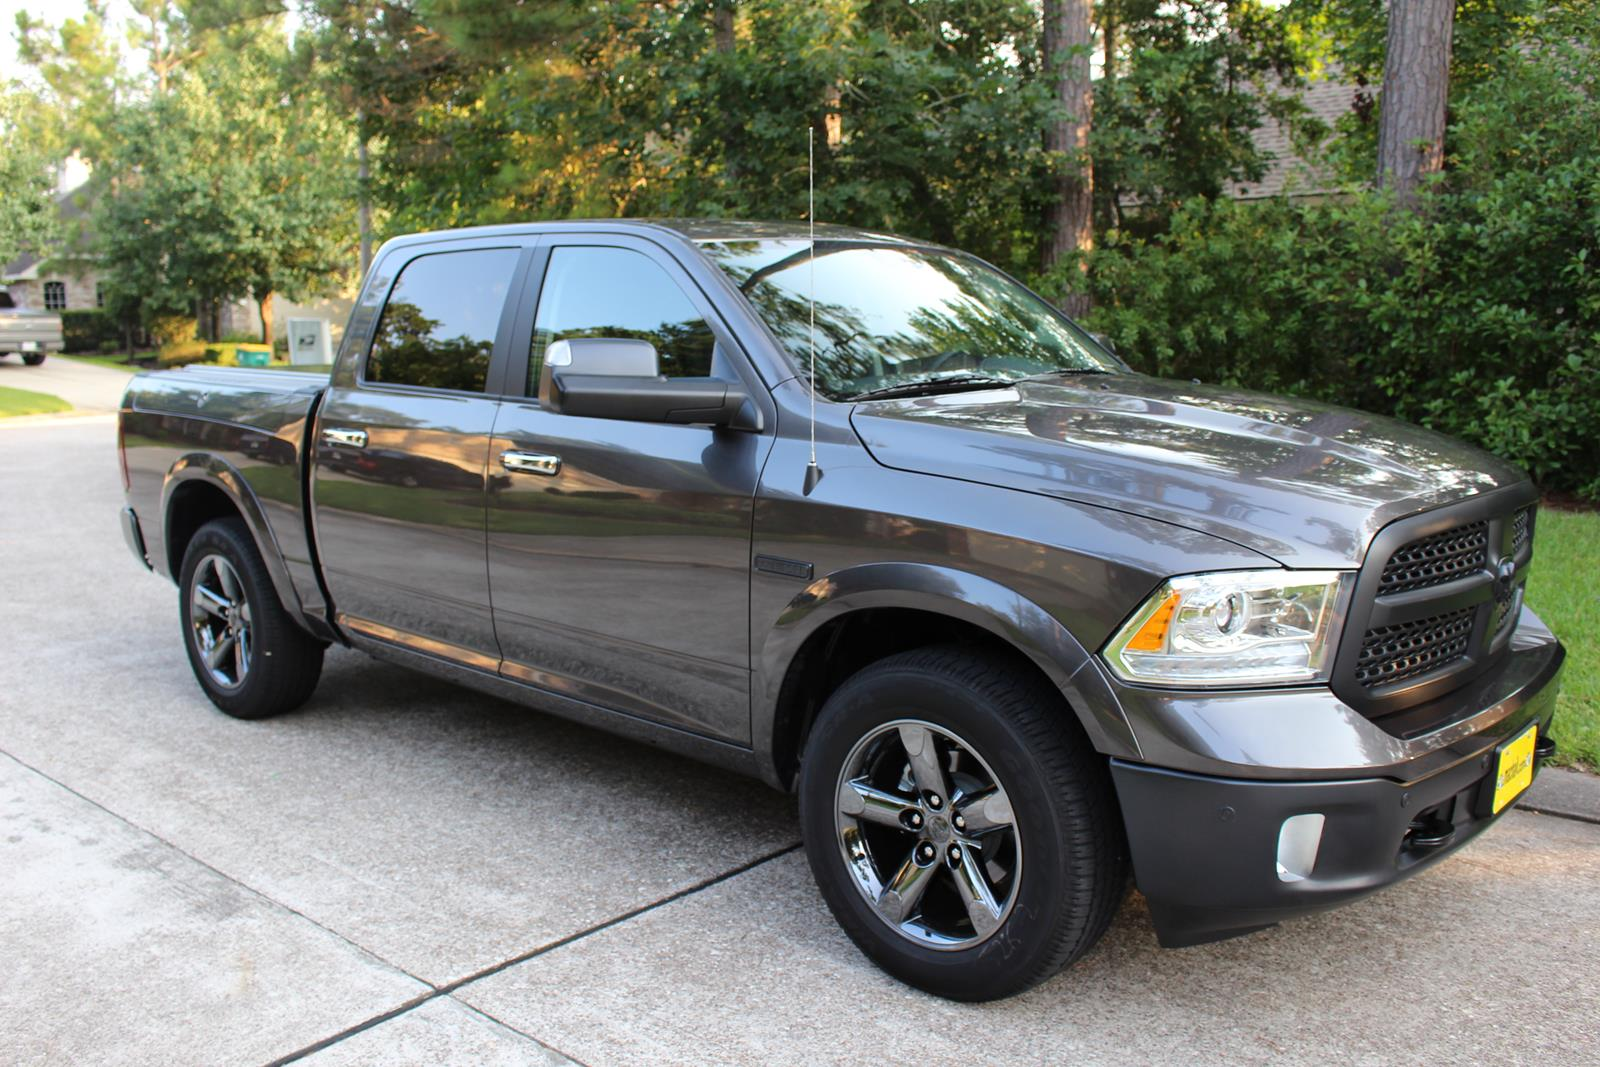 Ram 1500 Bed Cover >> PLASTI DIP: Pictures? How too? How's it look and last? - Page 2